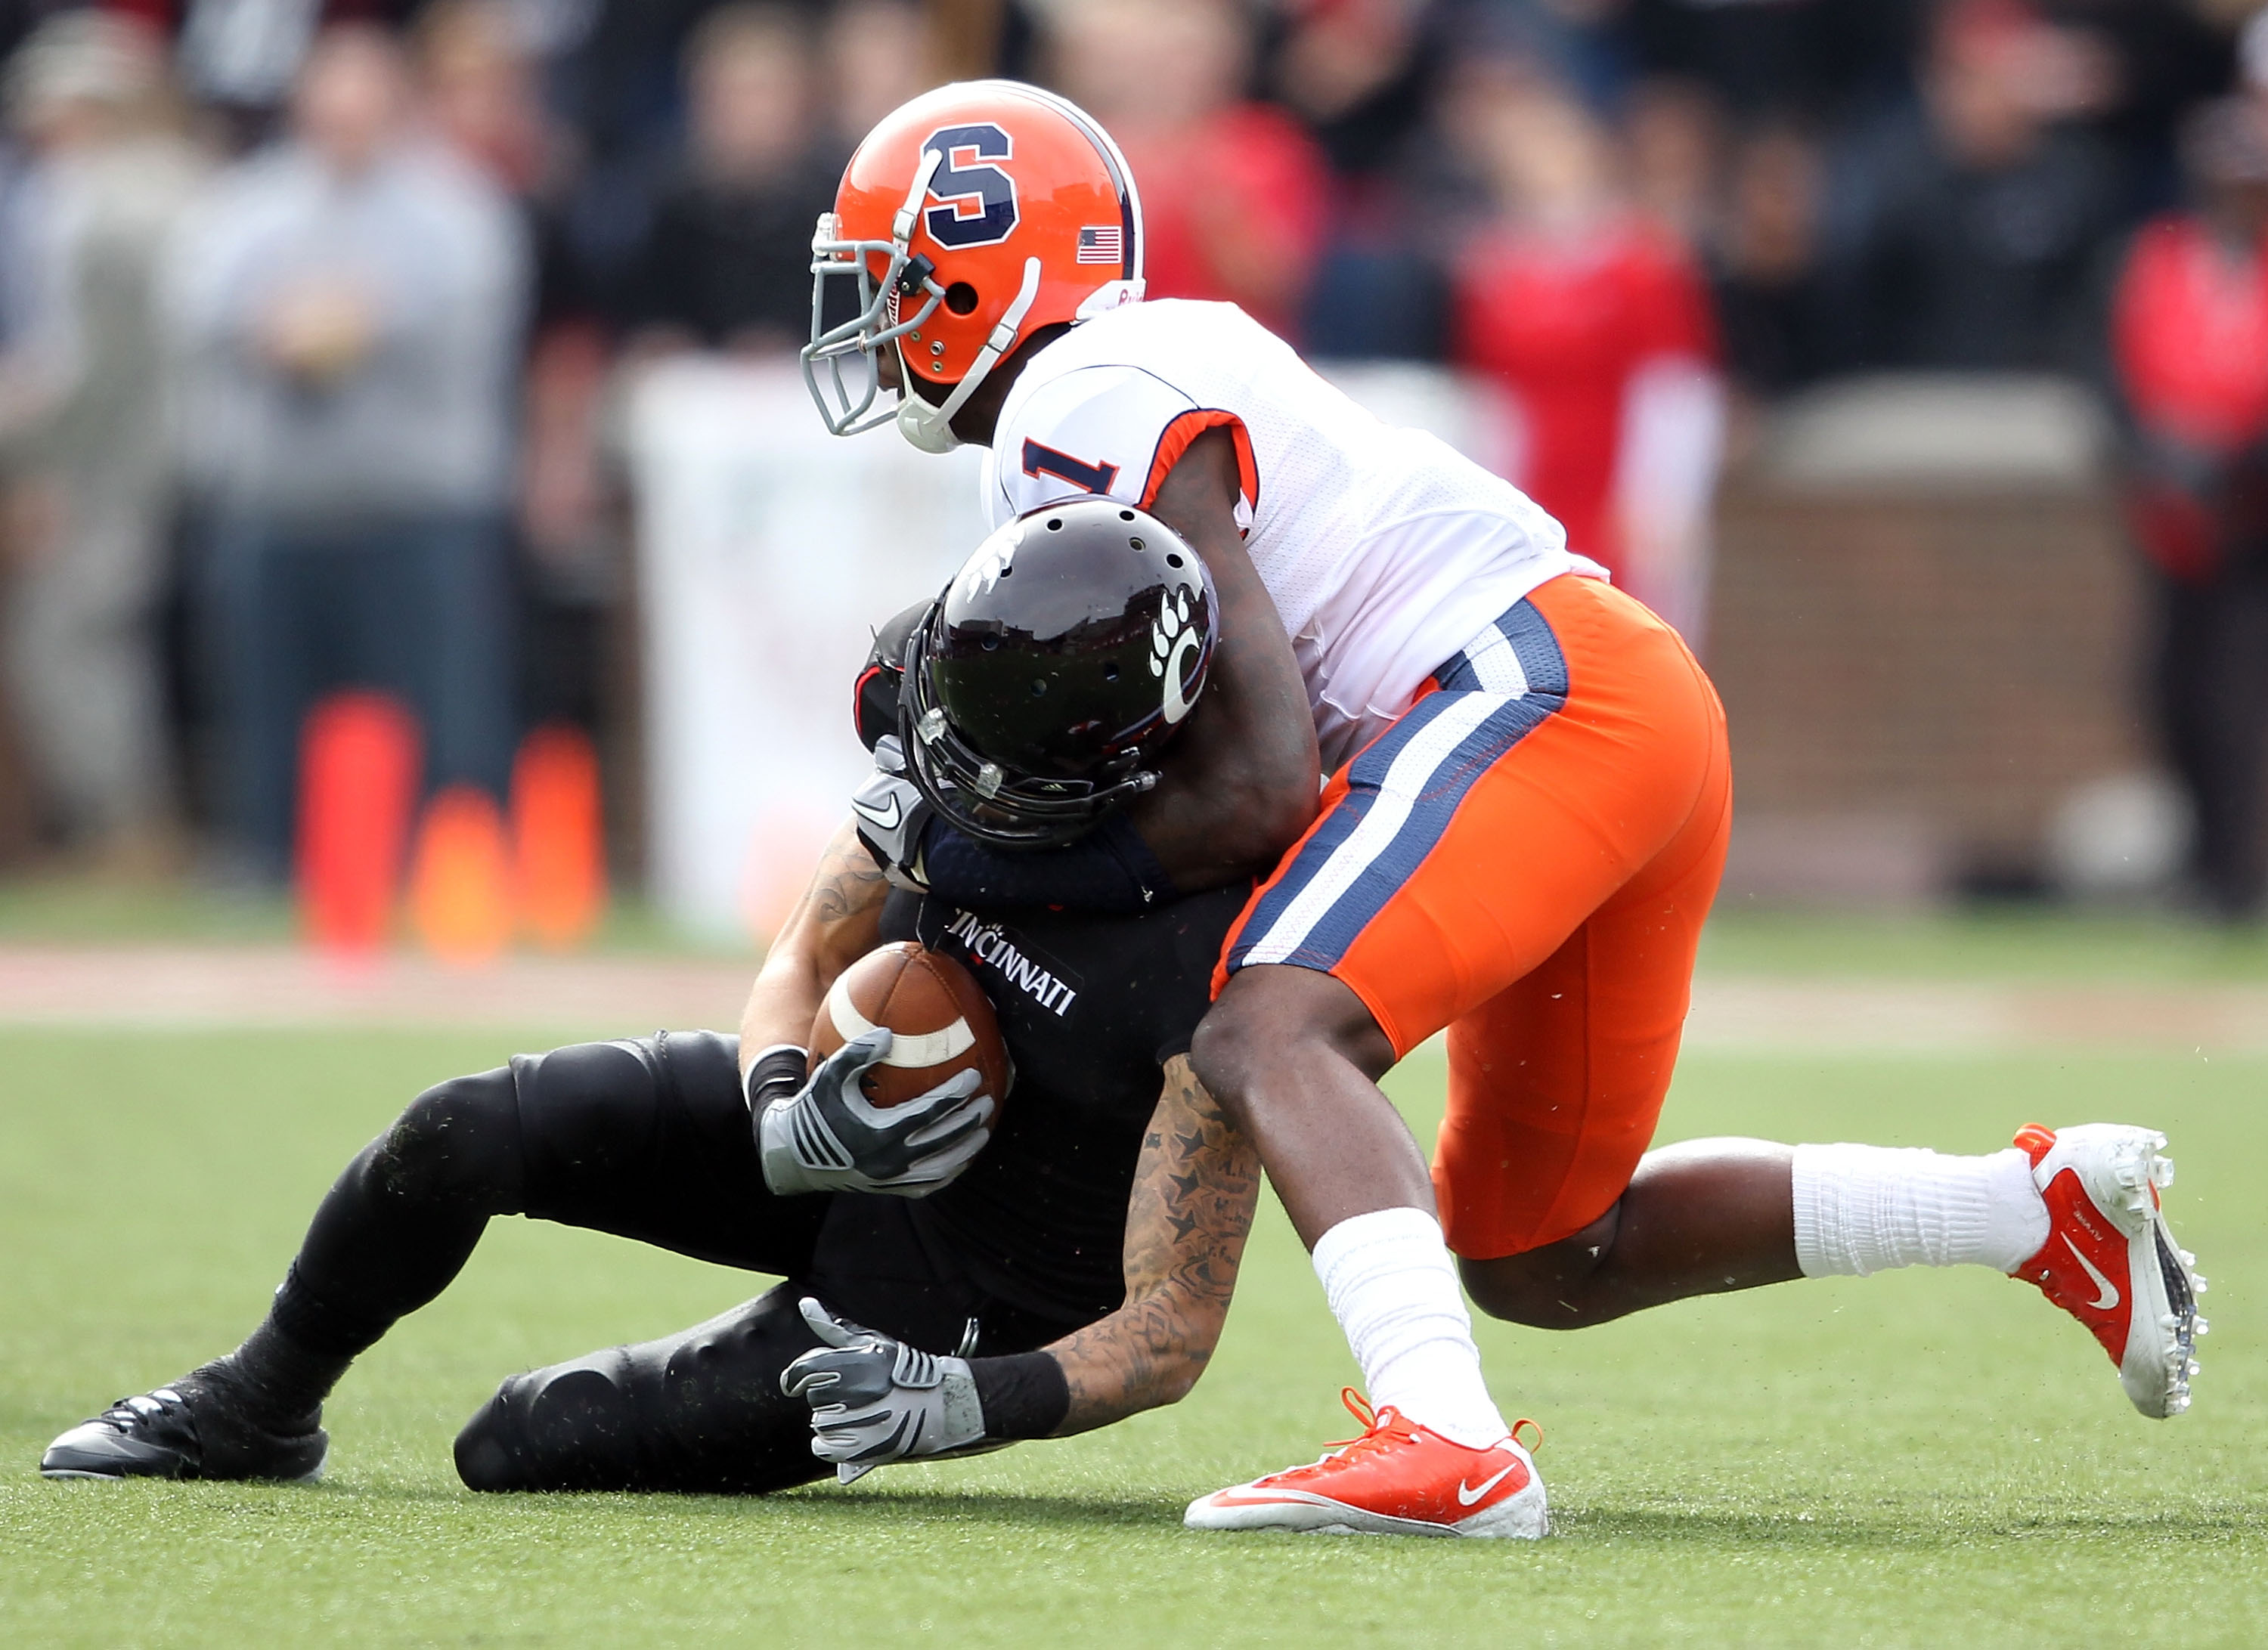 CINCINNATI - OCTOBER 30:  D J Woods #3 of the Cincinnati Bearcats is tackled by Phillip Thomas #1 of the Syracuse Orange during the Big East Conference game at Nippert Stadium on October 30, 2010 in Cincinnati, Ohio.  (Photo by Andy Lyons/Getty Images)